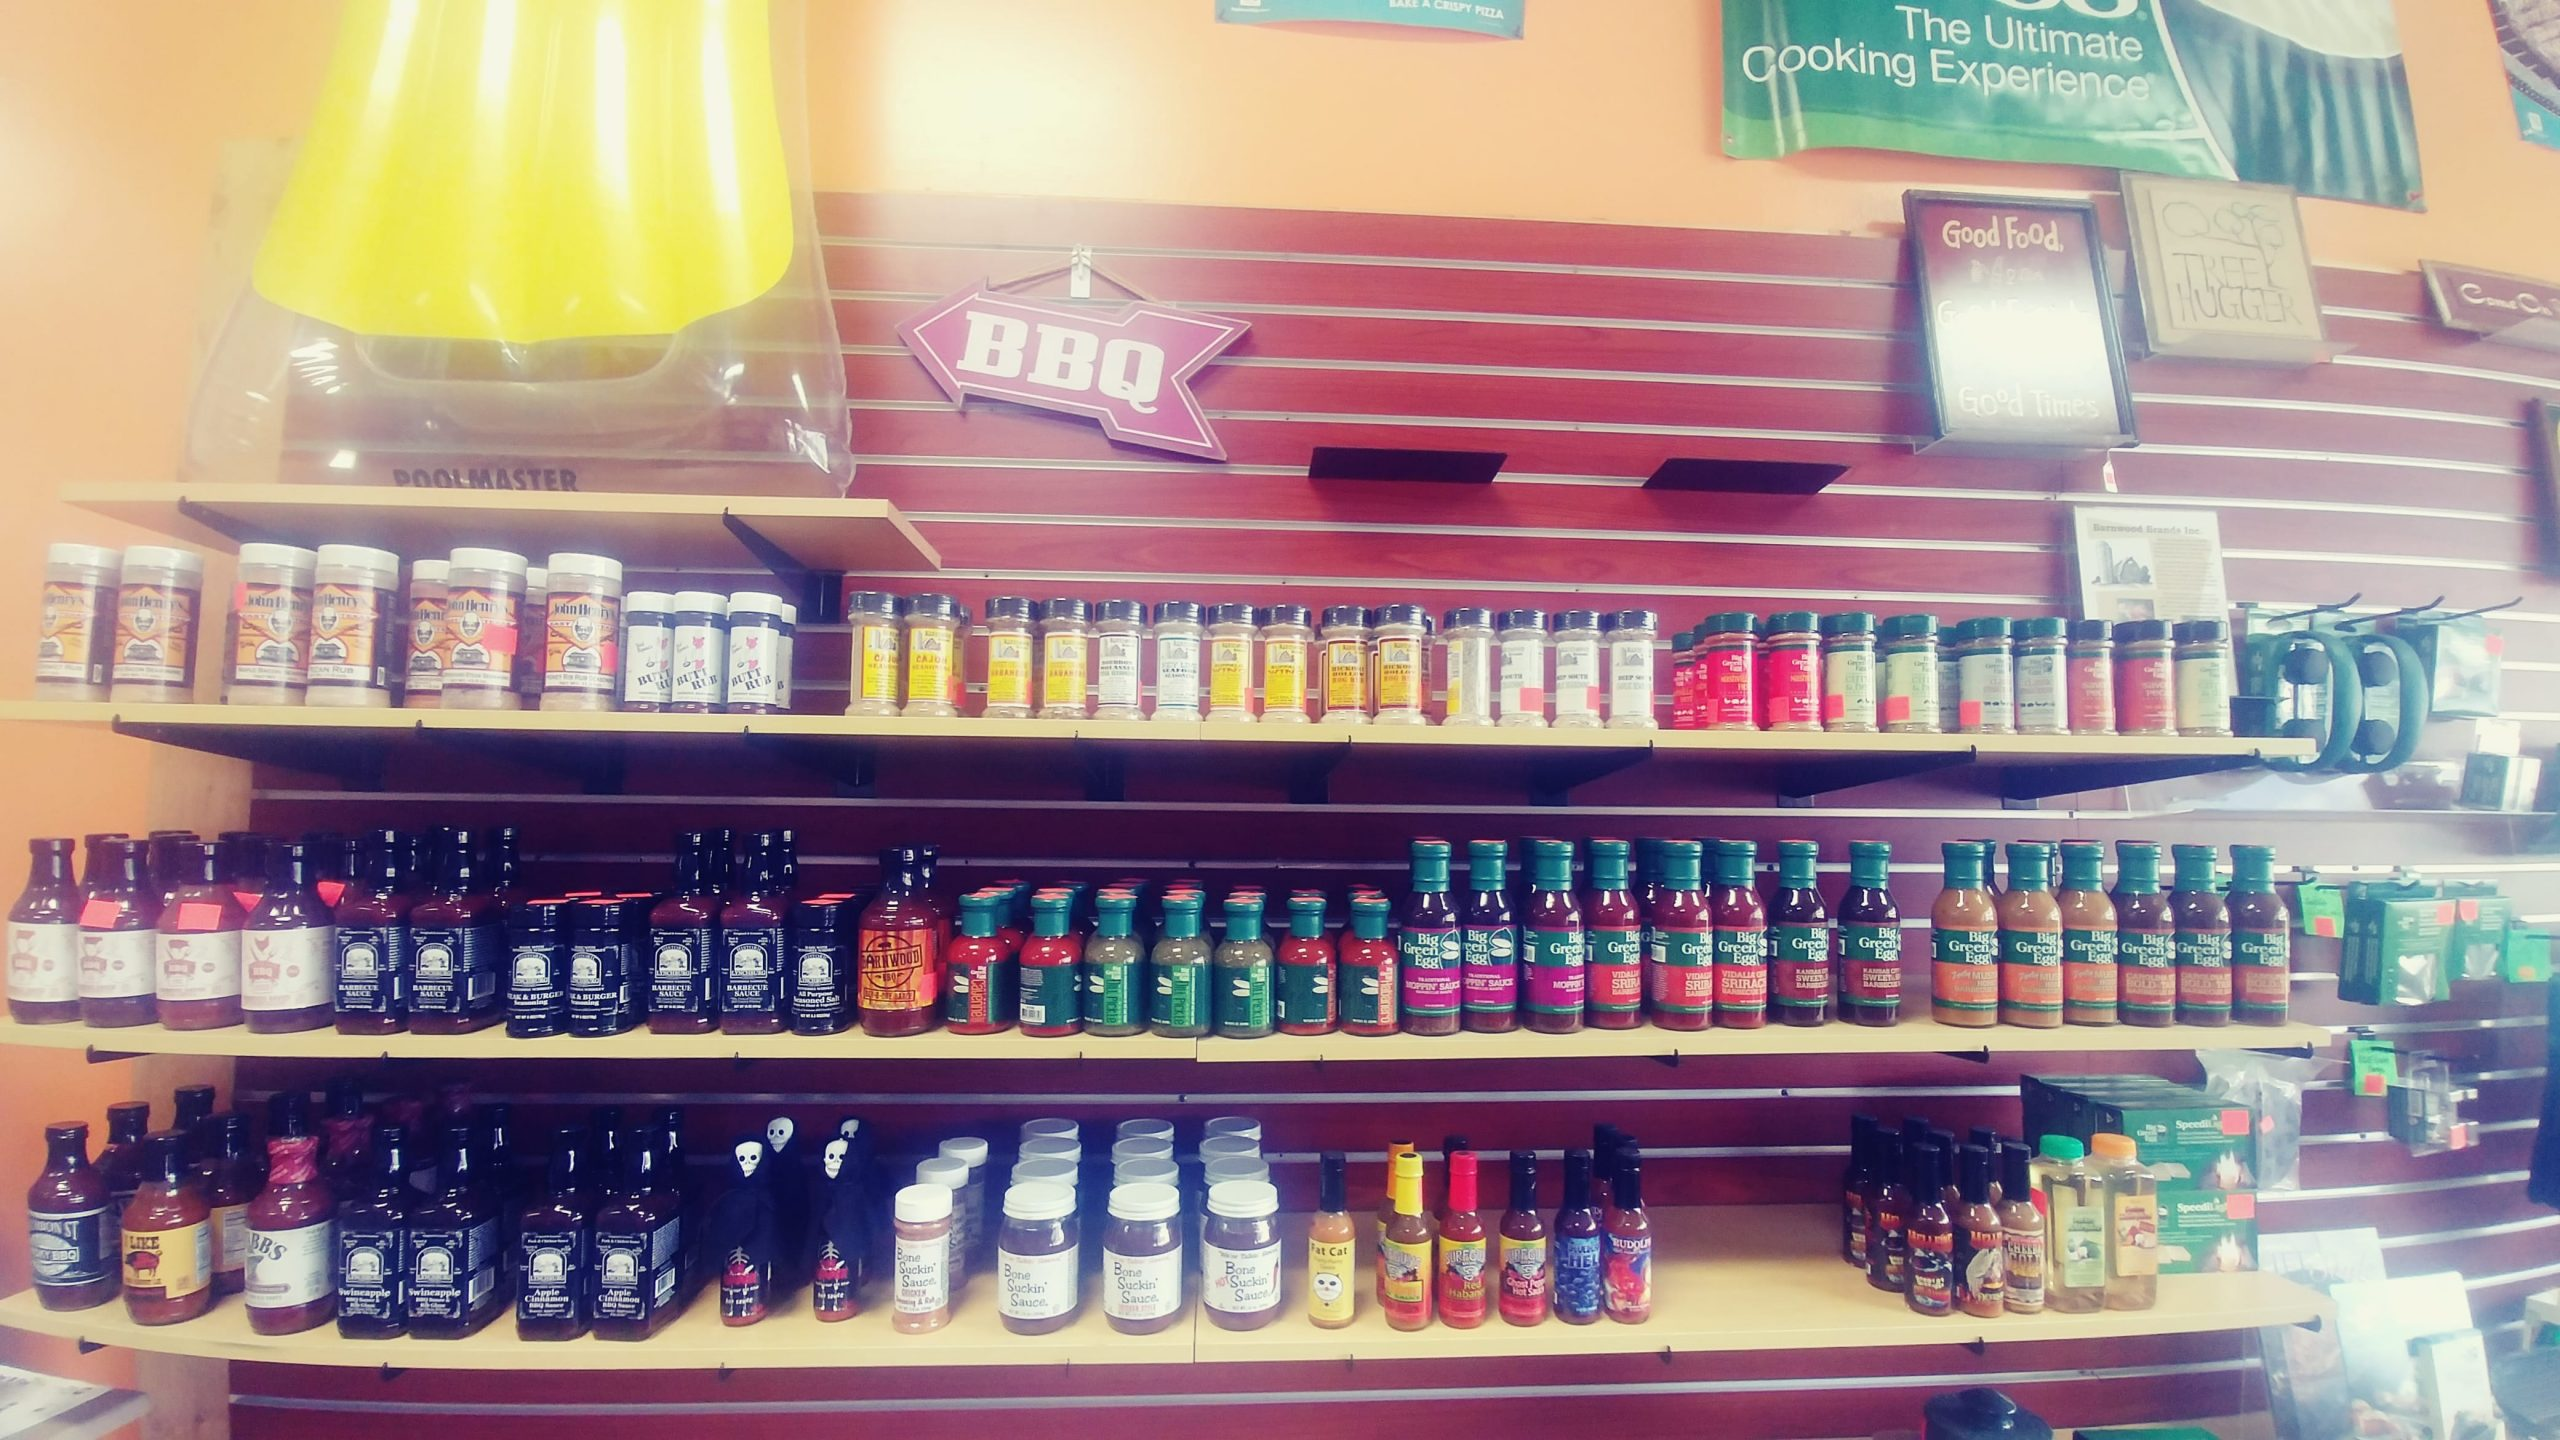 Barbecue sauces and spices in store display